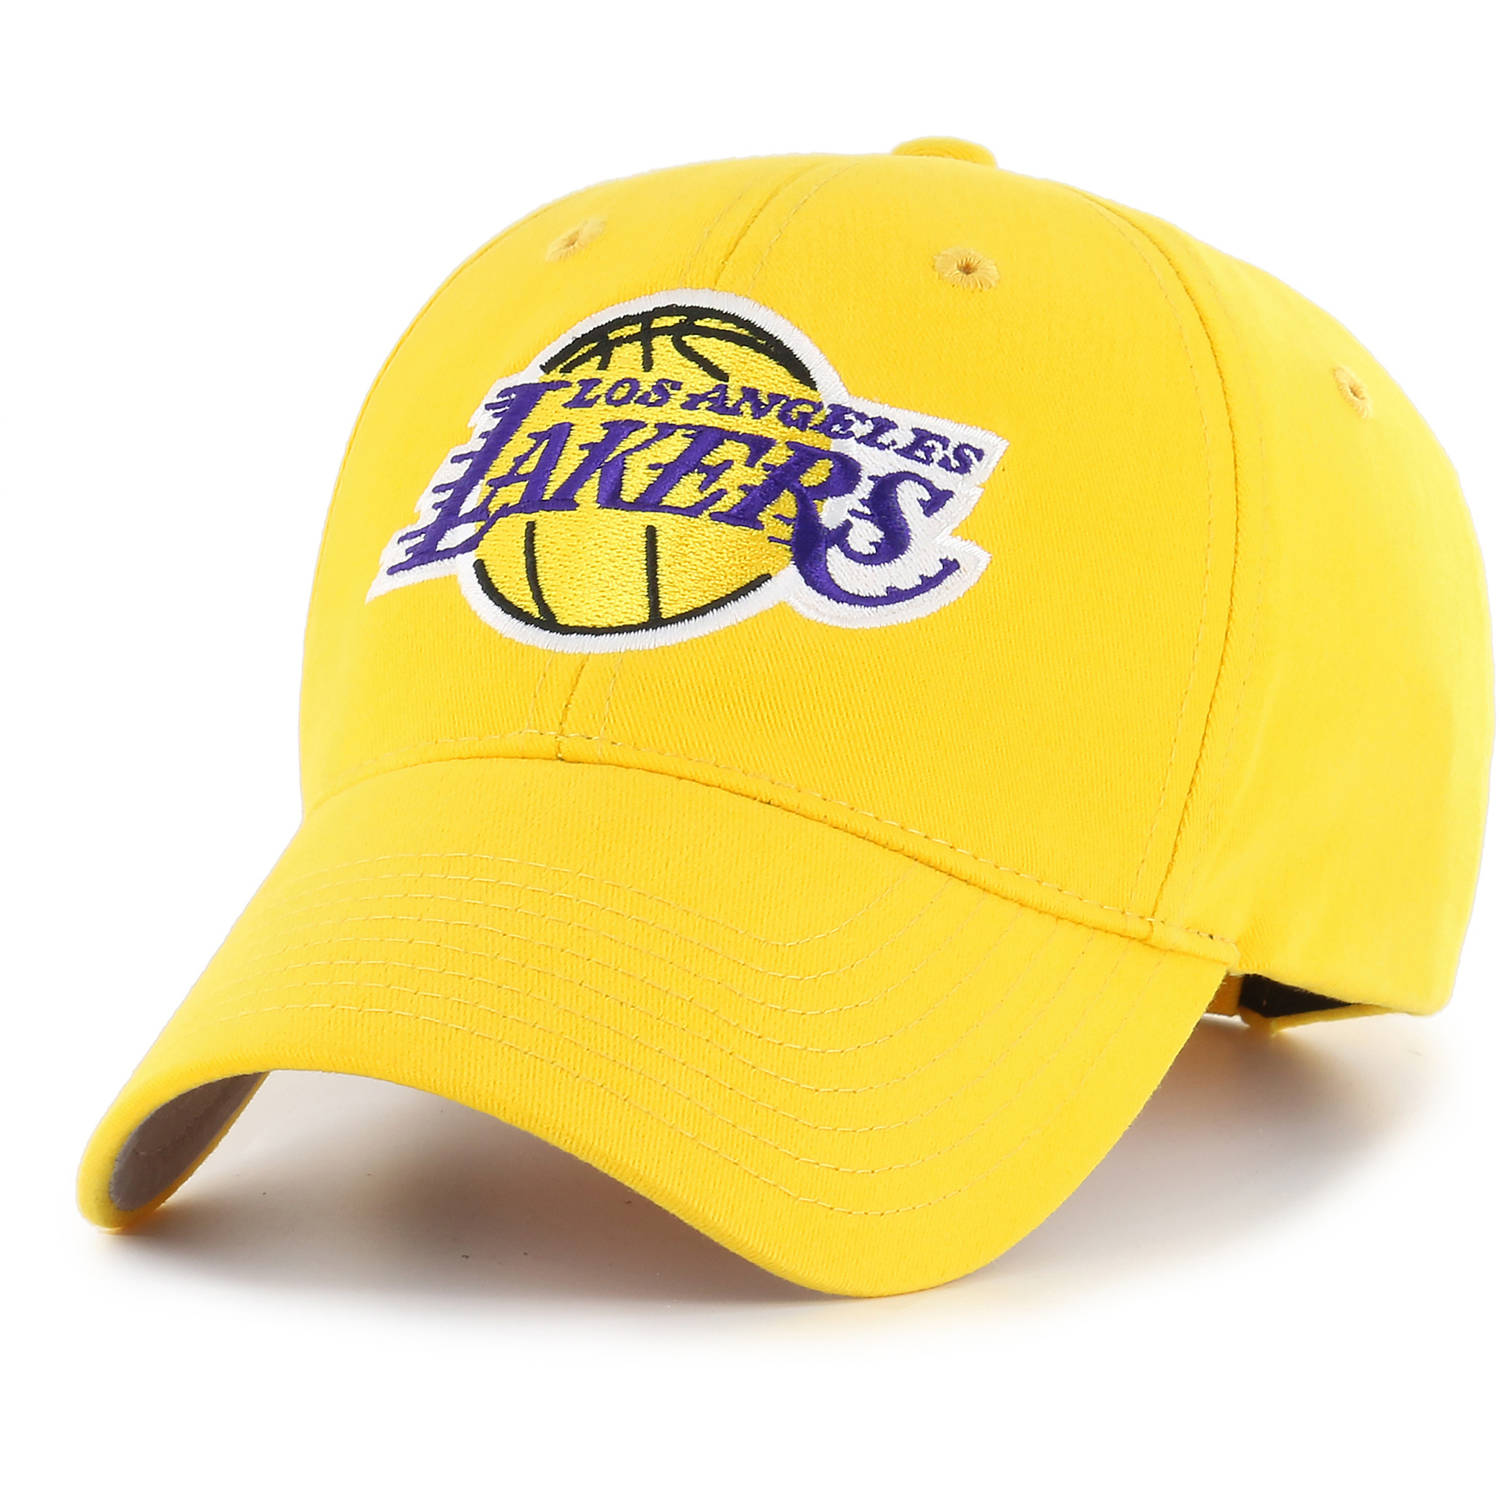 NBA Los Angeles Lakers Basic Cap/Hat - Fan Favorite